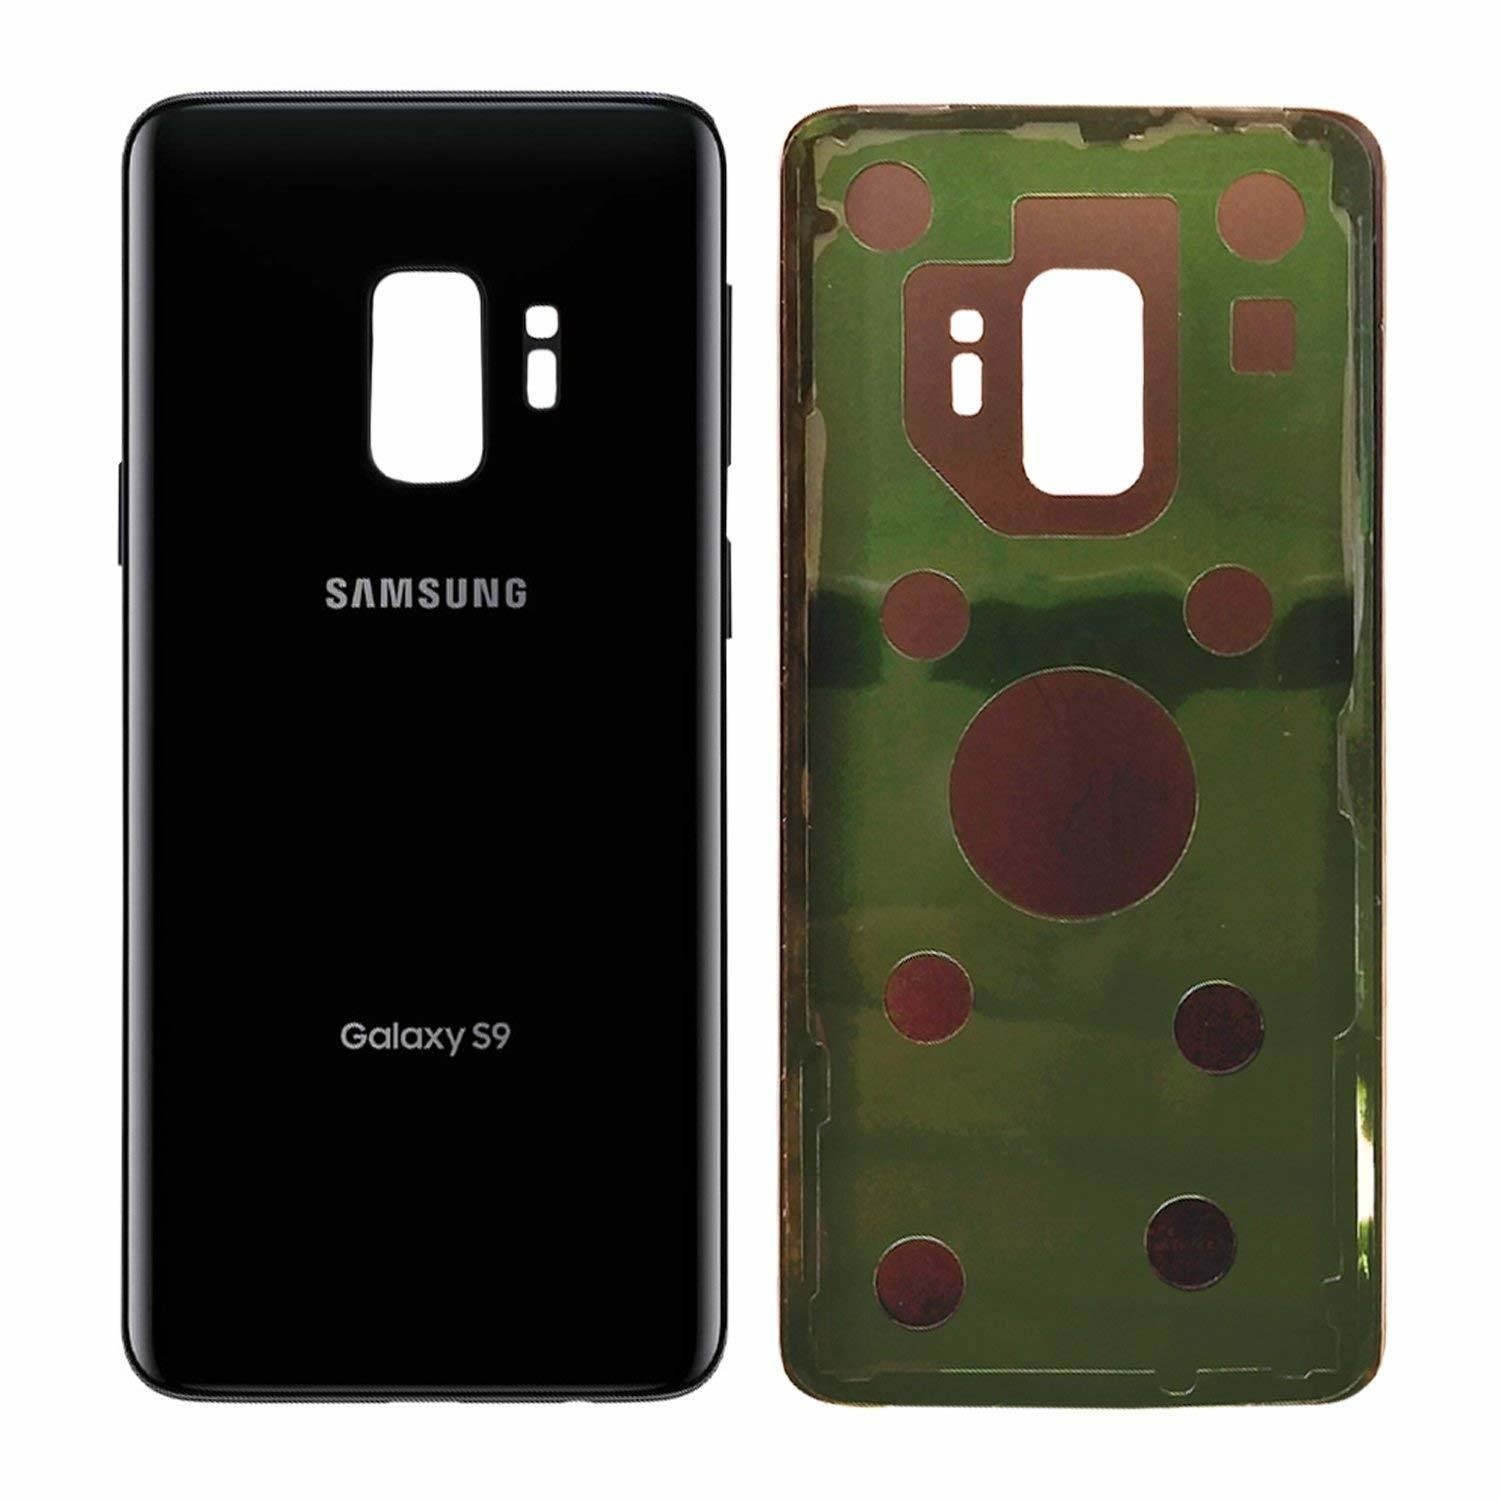 Samsung S9 Back Cover Replacement - Black